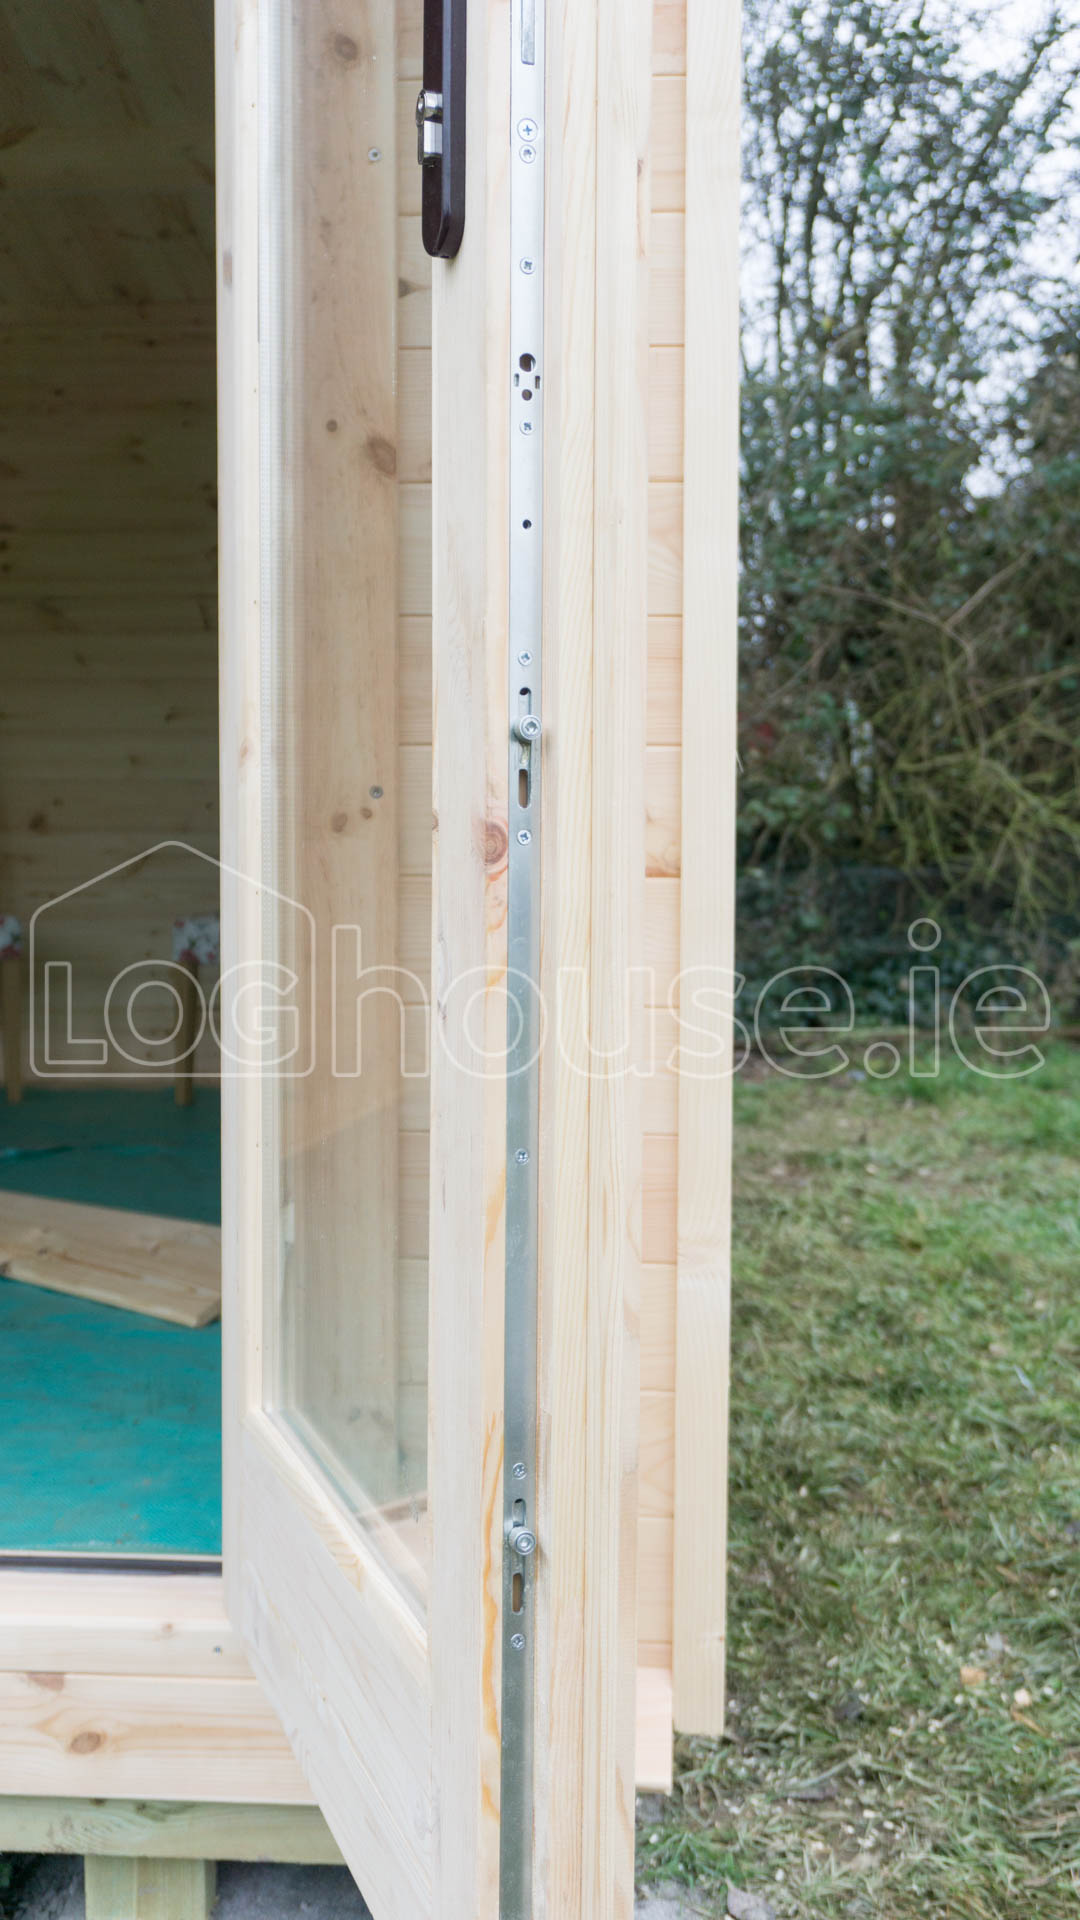 Loghouse Living Type Windows & Doors